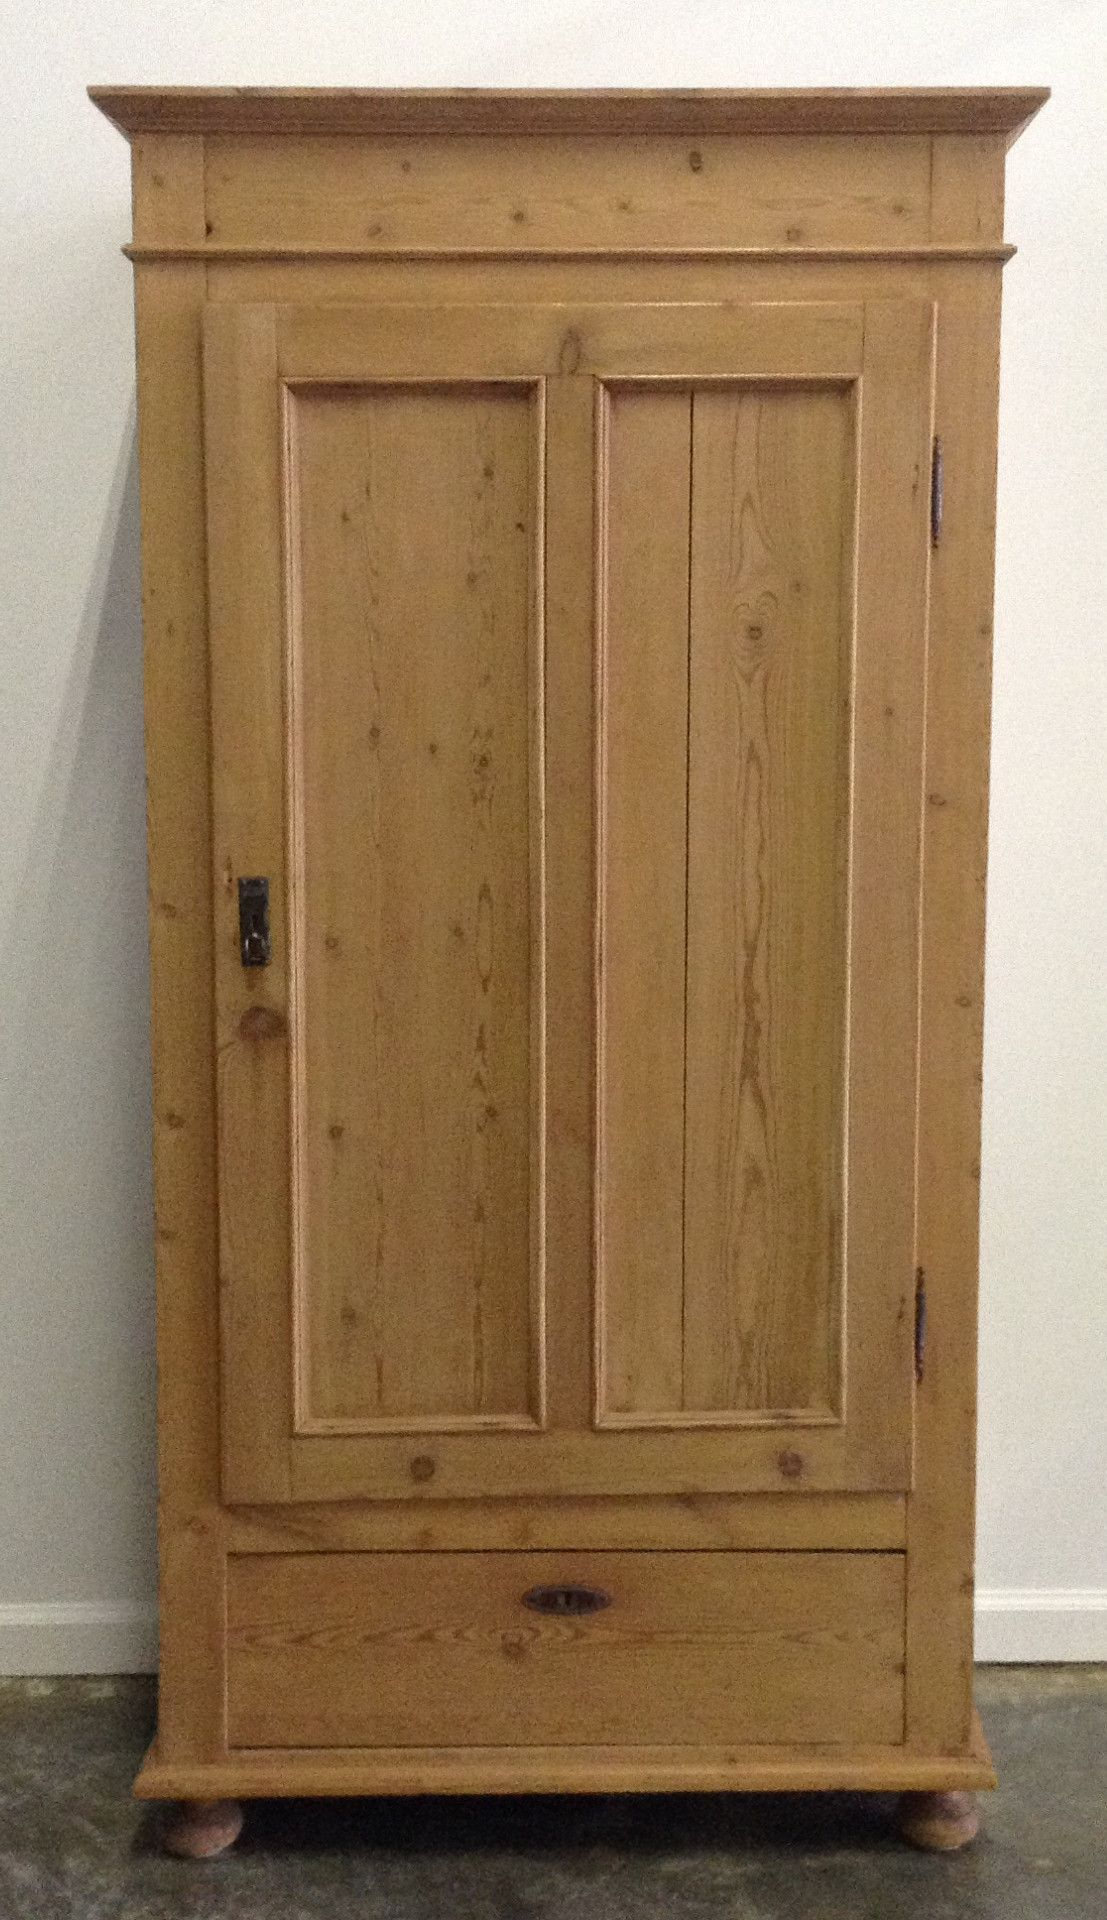 Antique Pine one door cabinet with shelves. - Antique Pine One Door Cabinet With Shelves. Earthly Desires